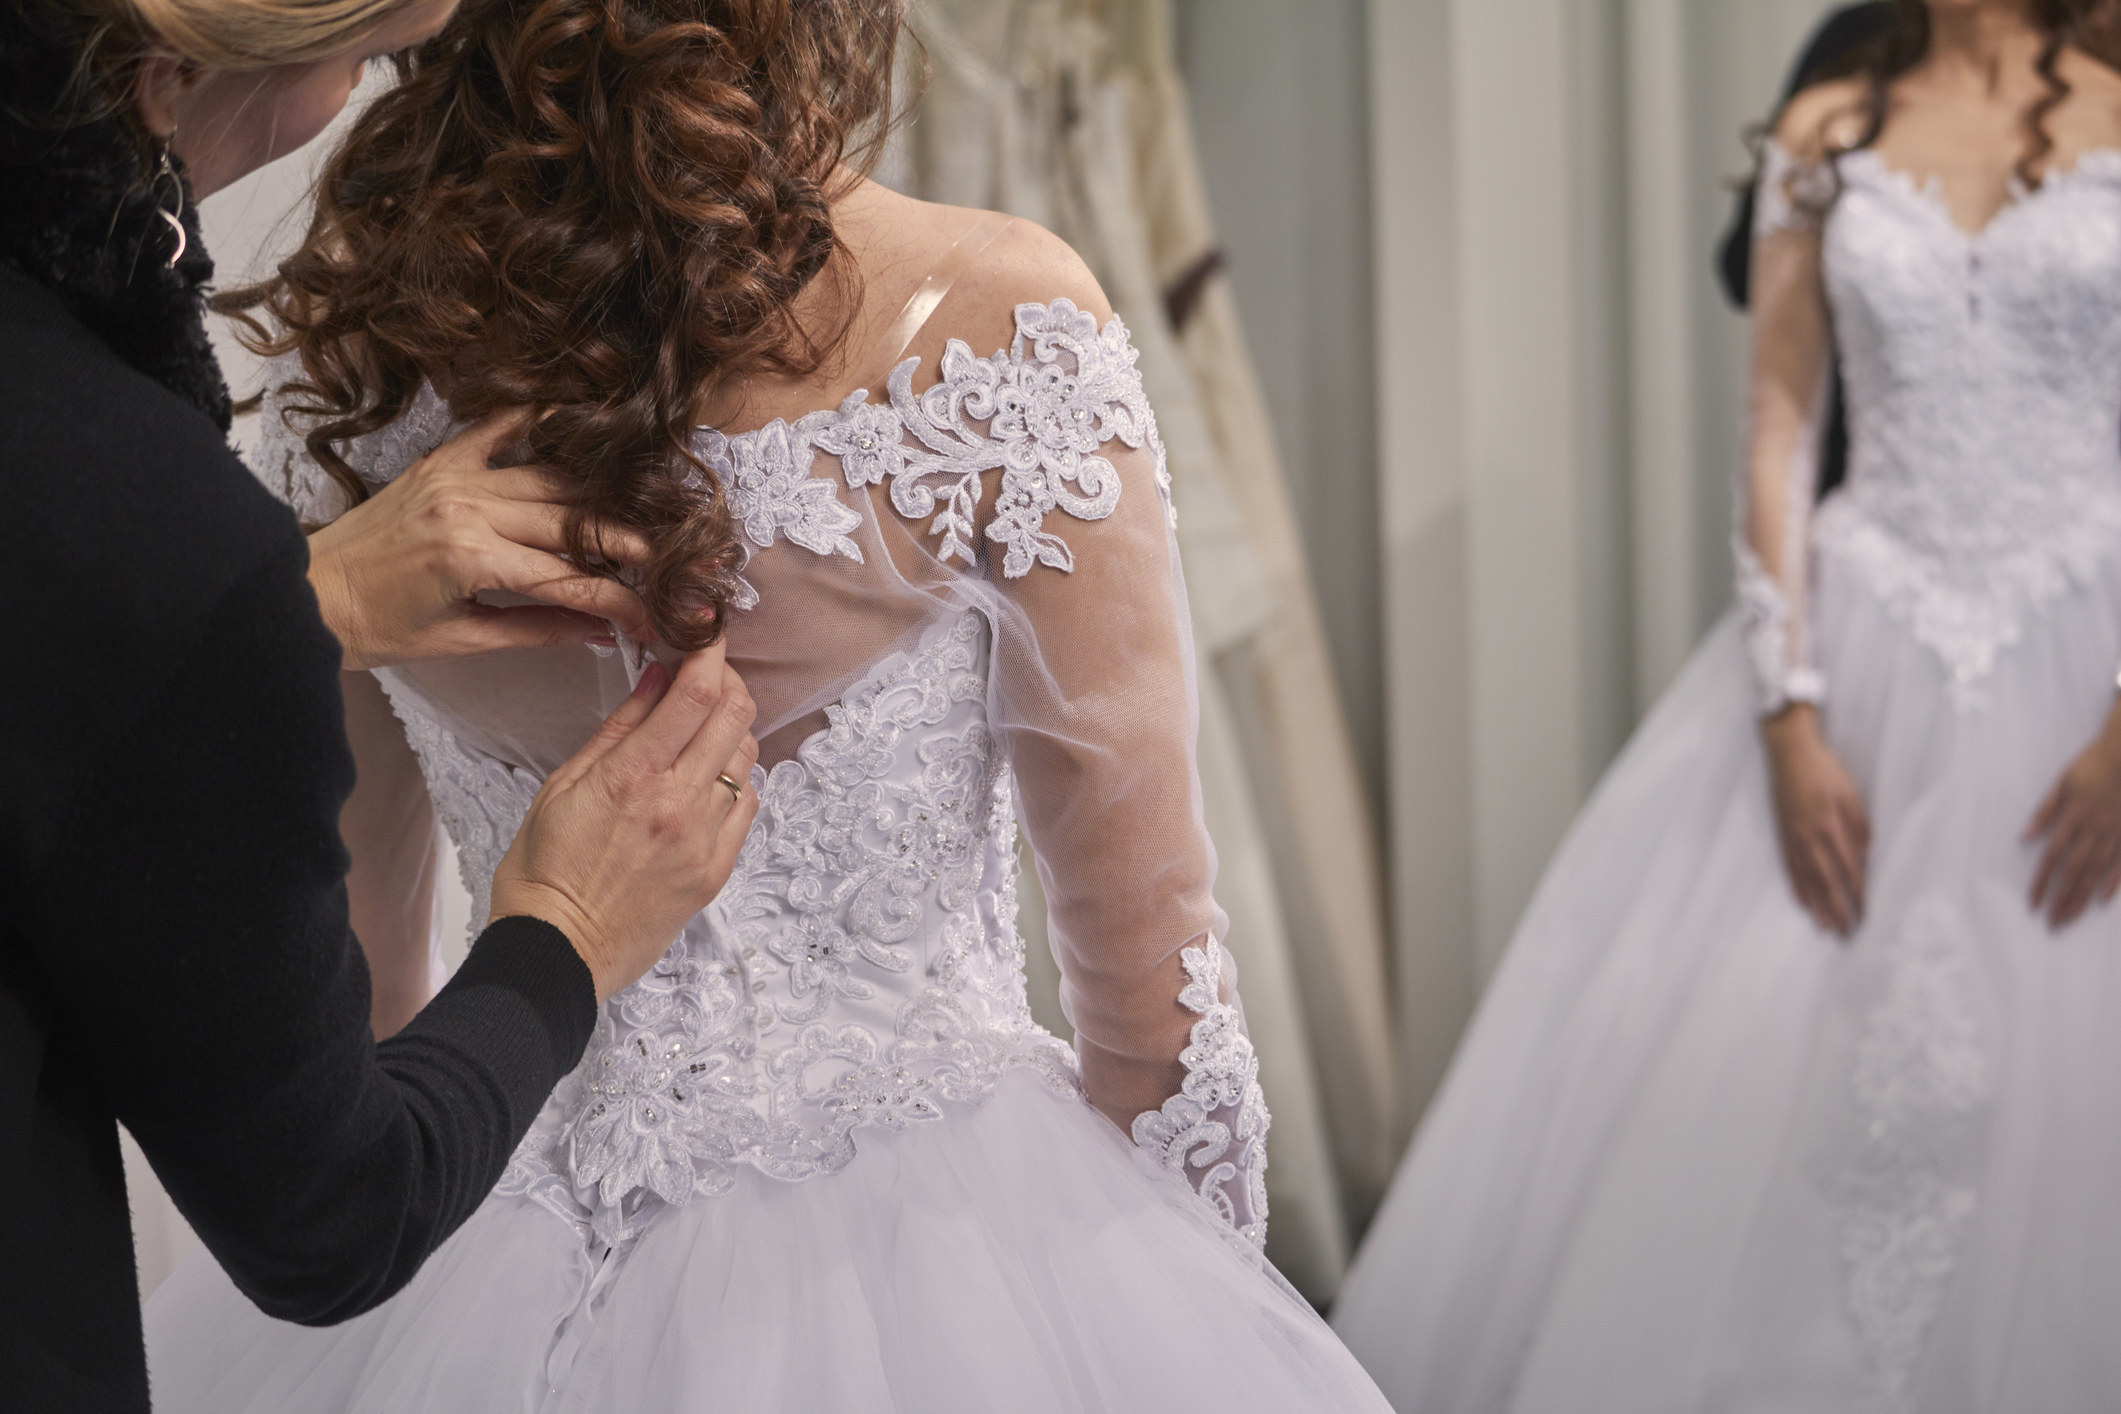 A bride tries on a wedding dress at a store